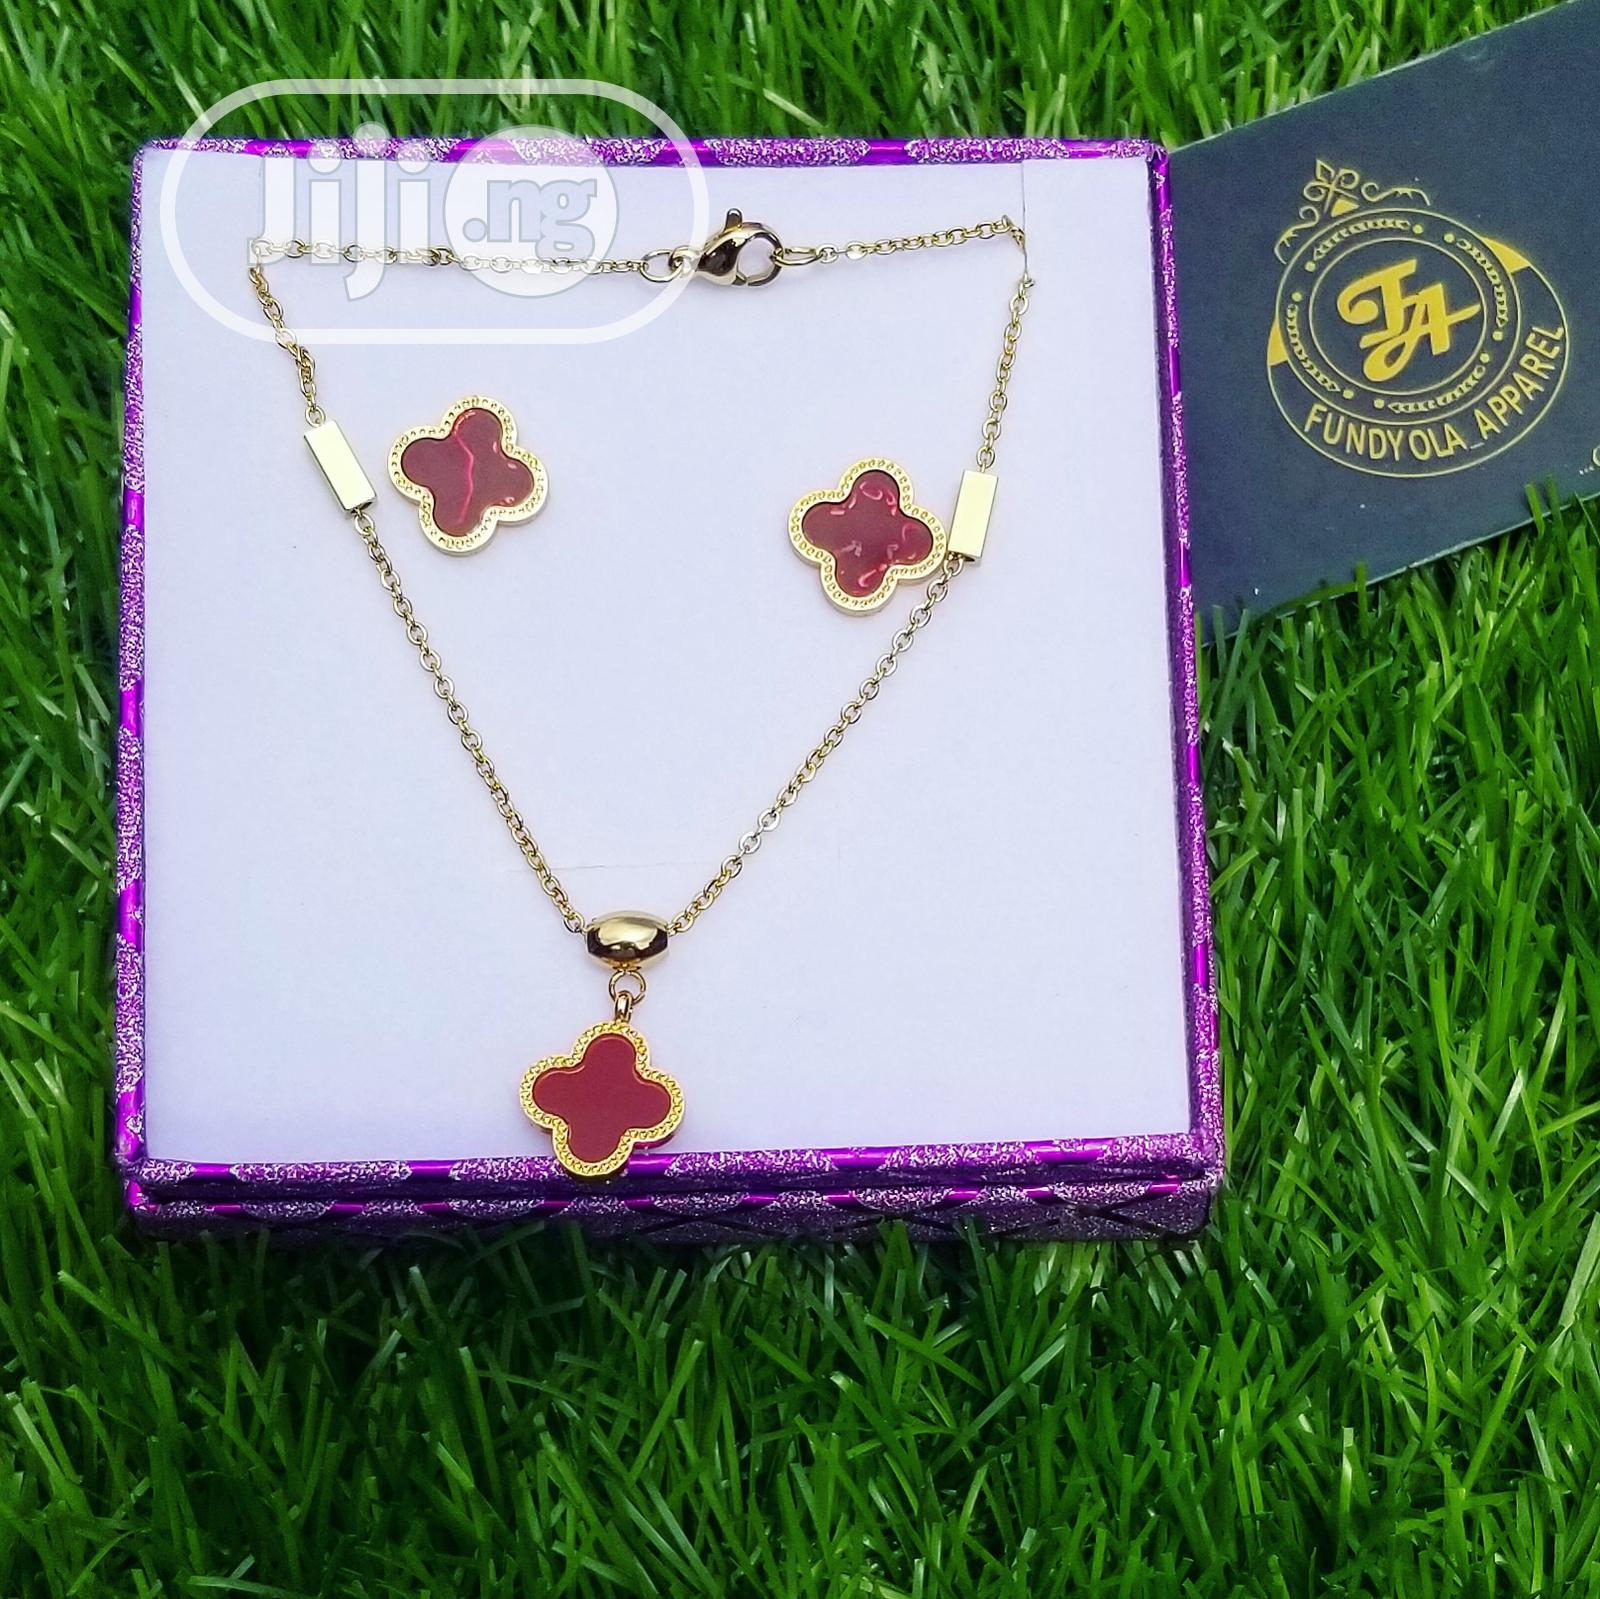 Clove VCA Earring and Pendant Necklace